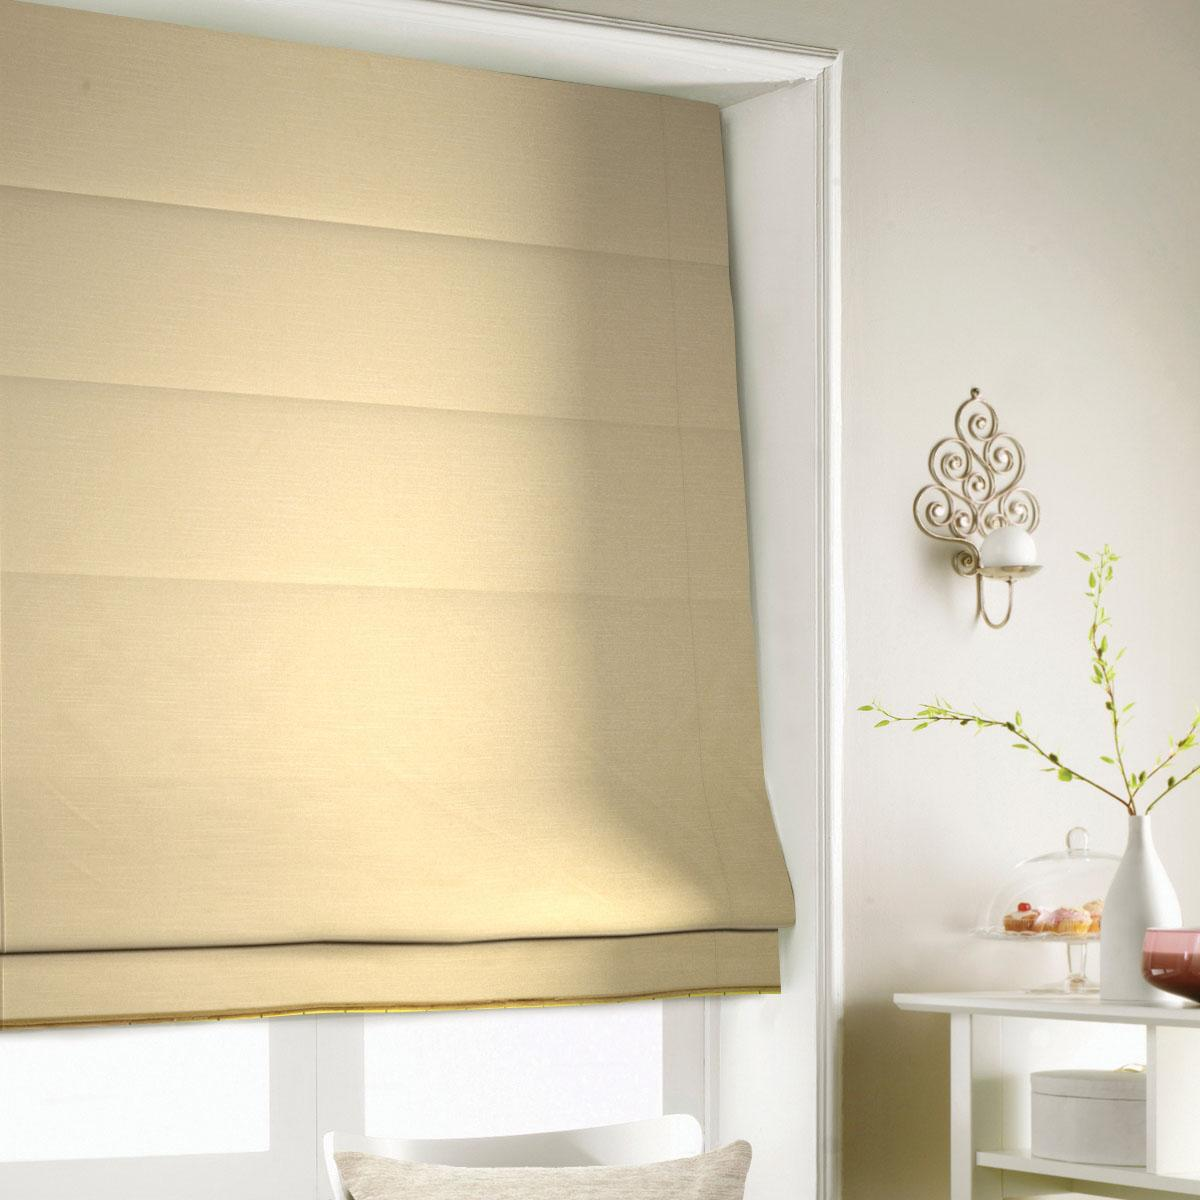 Antique Shine Roman Blind